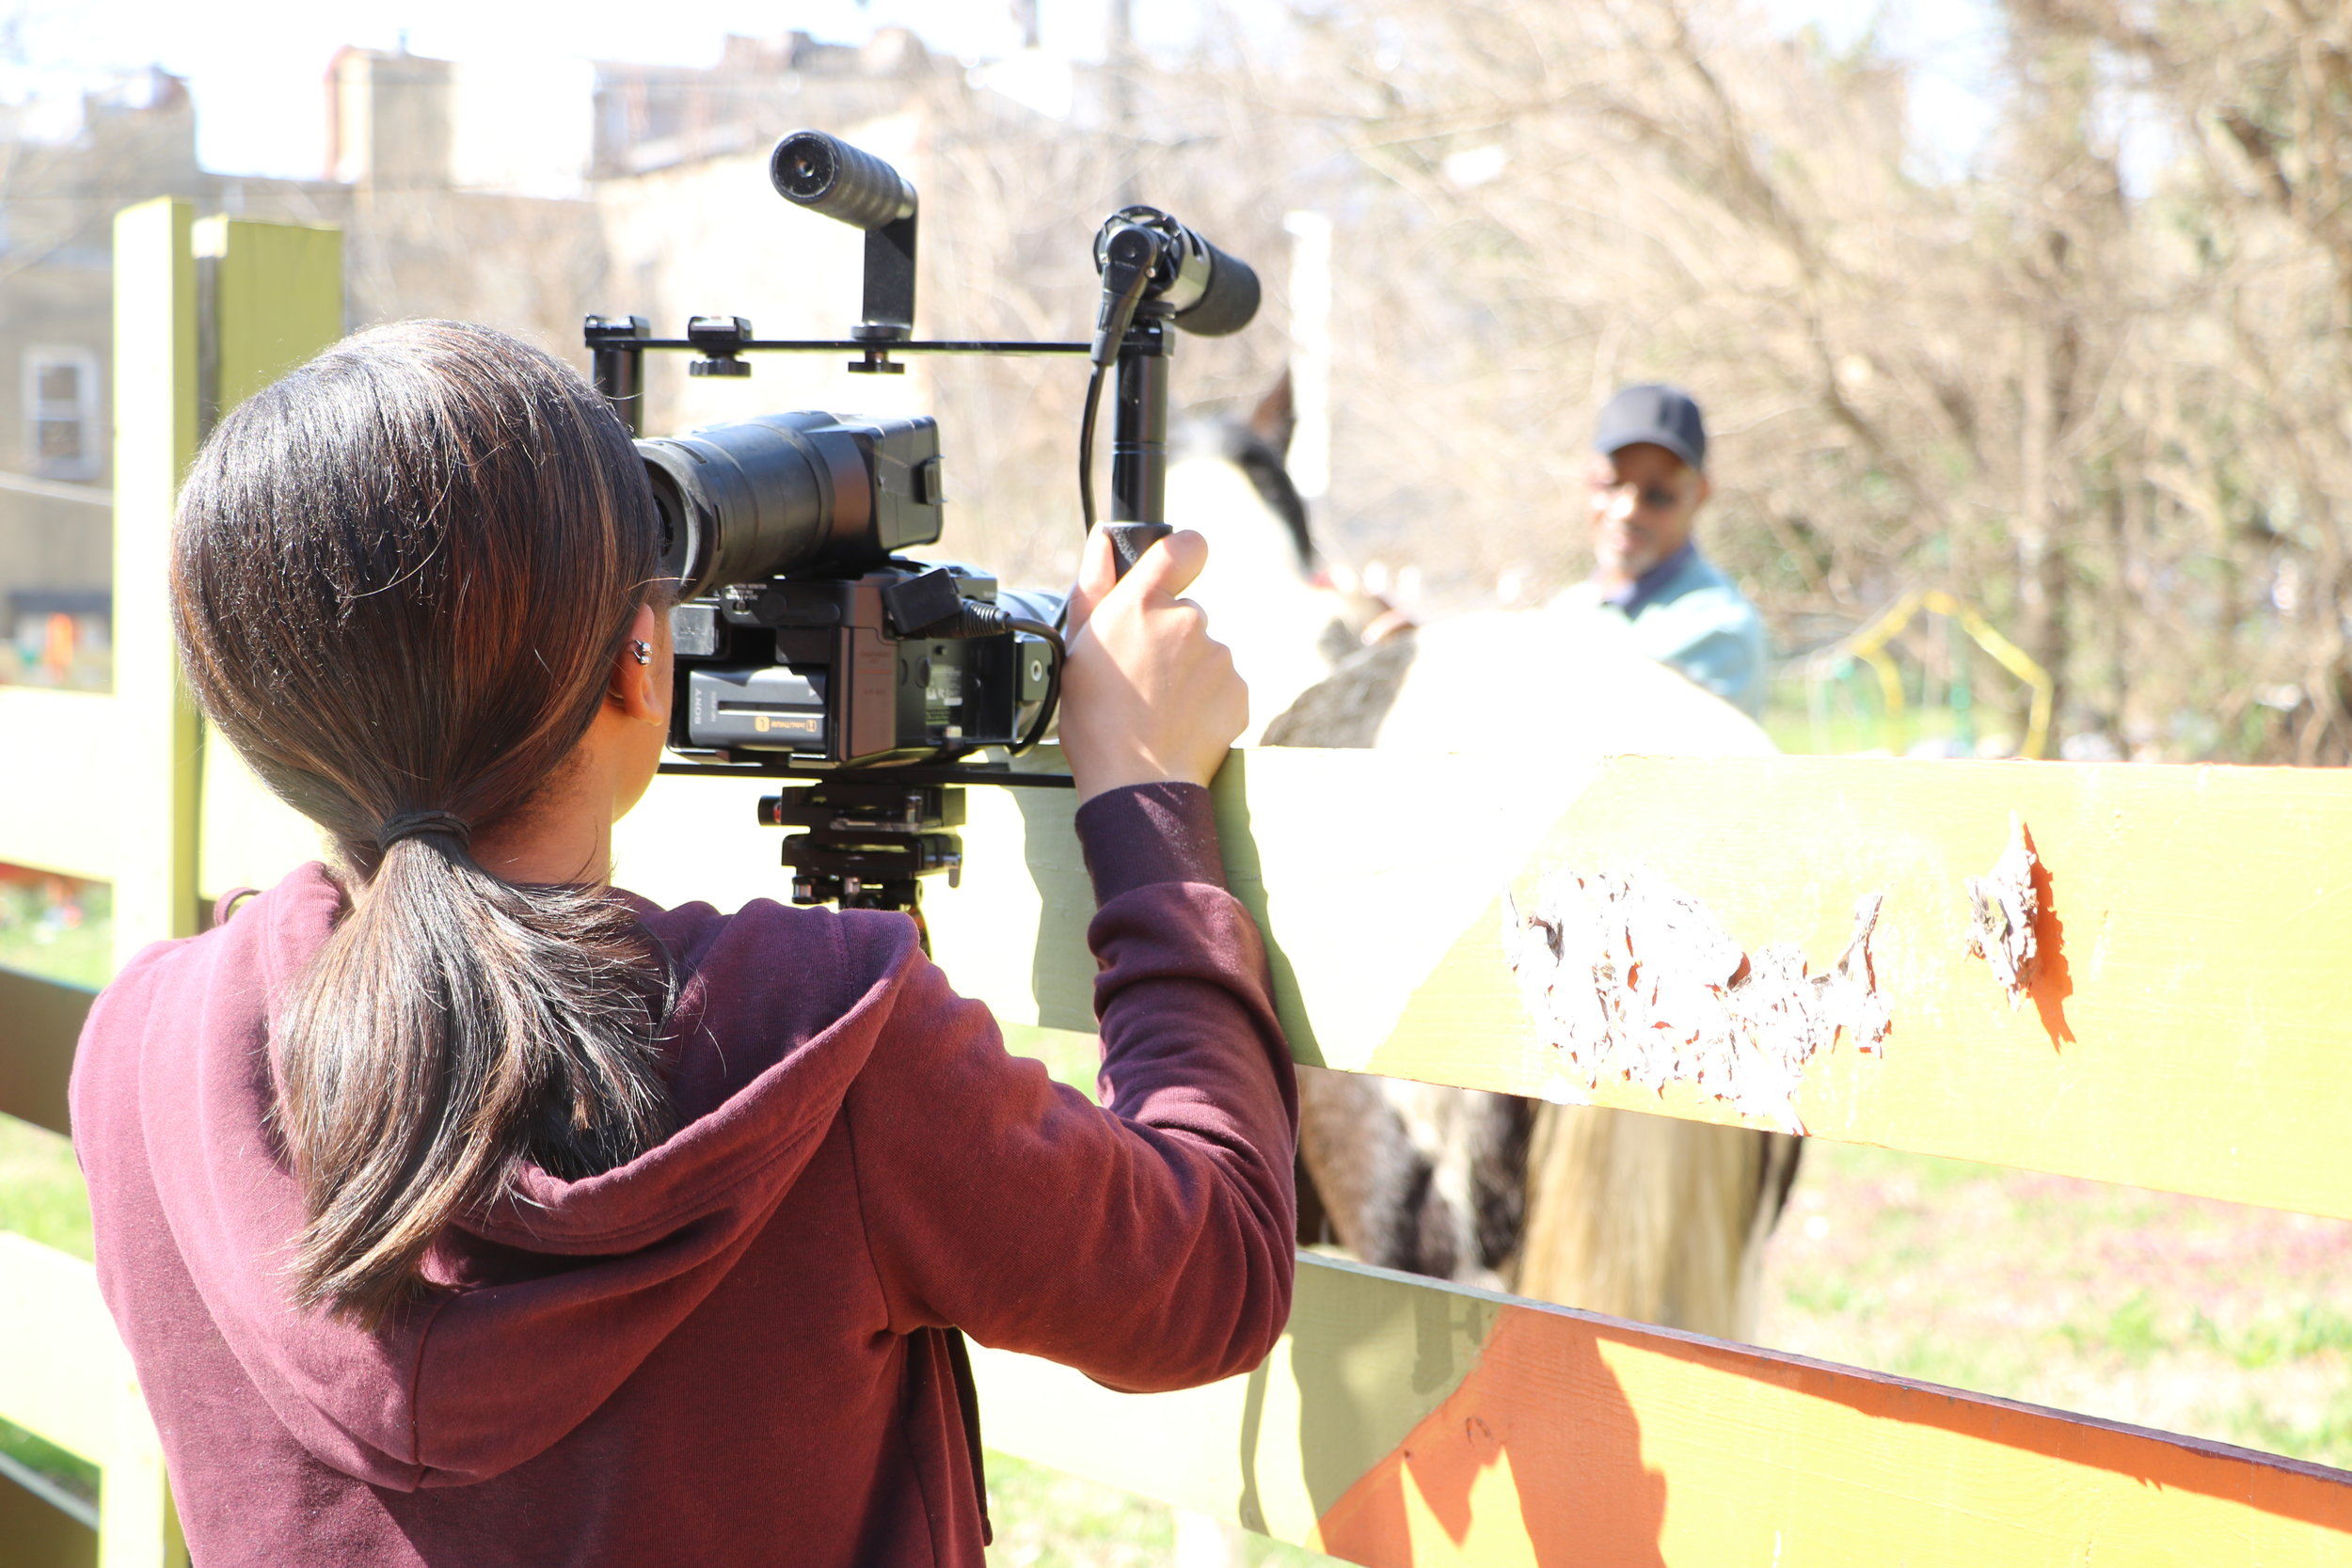 Community-Based Filmmaking: The Baltimore Arabbers